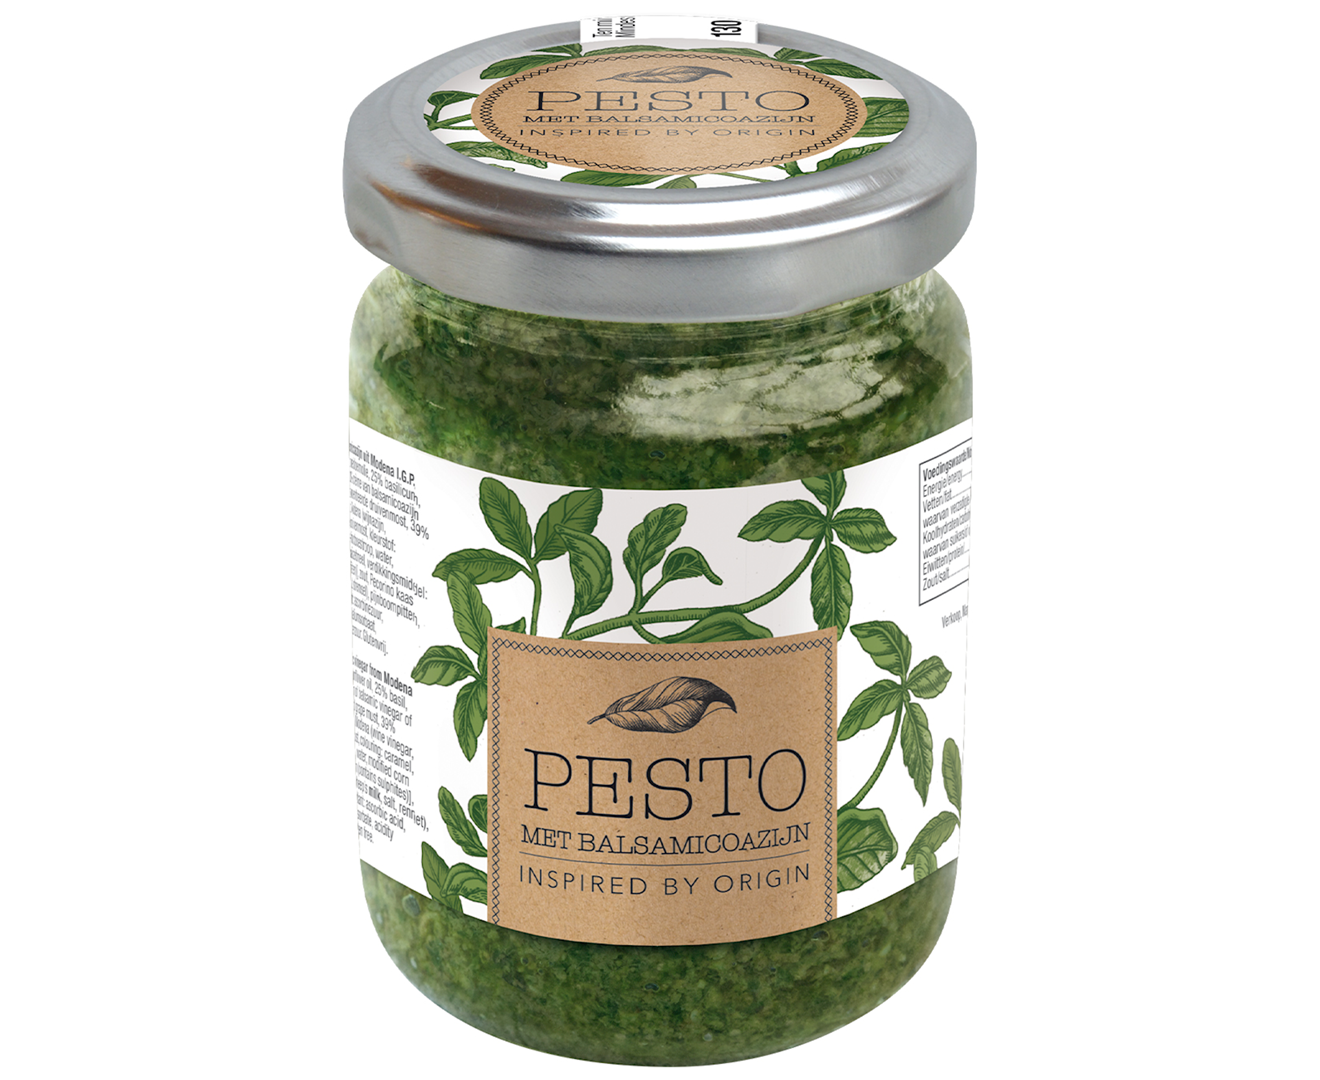 Productafbeelding Pesto balsamico Inspired by origin 130g pot